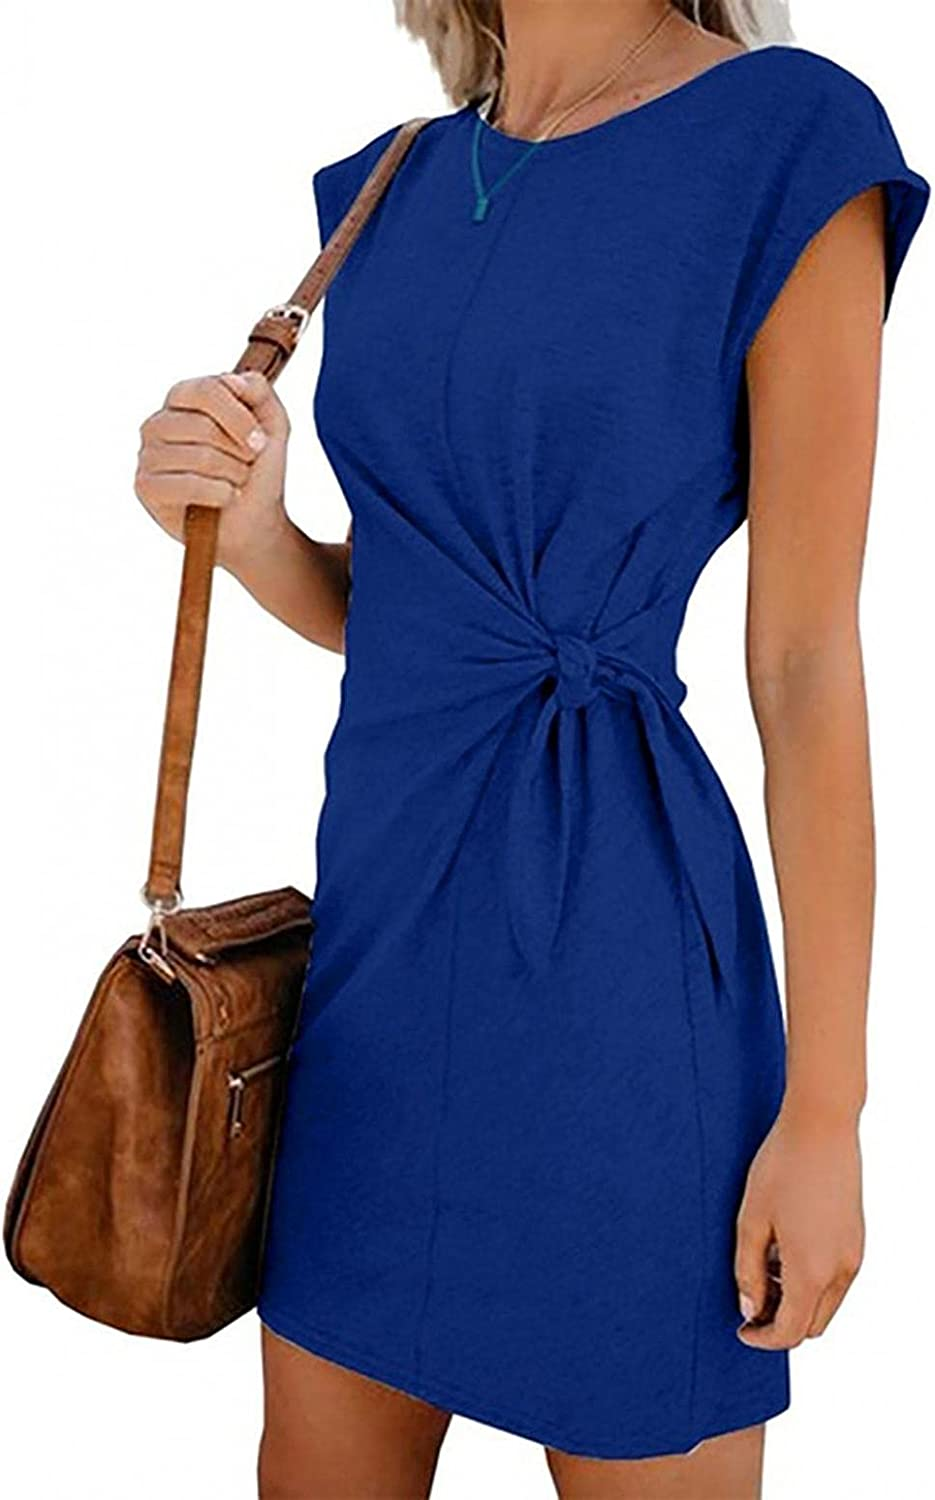 Gillberry Womens Round Neck Casual Short Sleeve Dress with Pocket Wear to Stretchy Work Office Bodycon Dresses